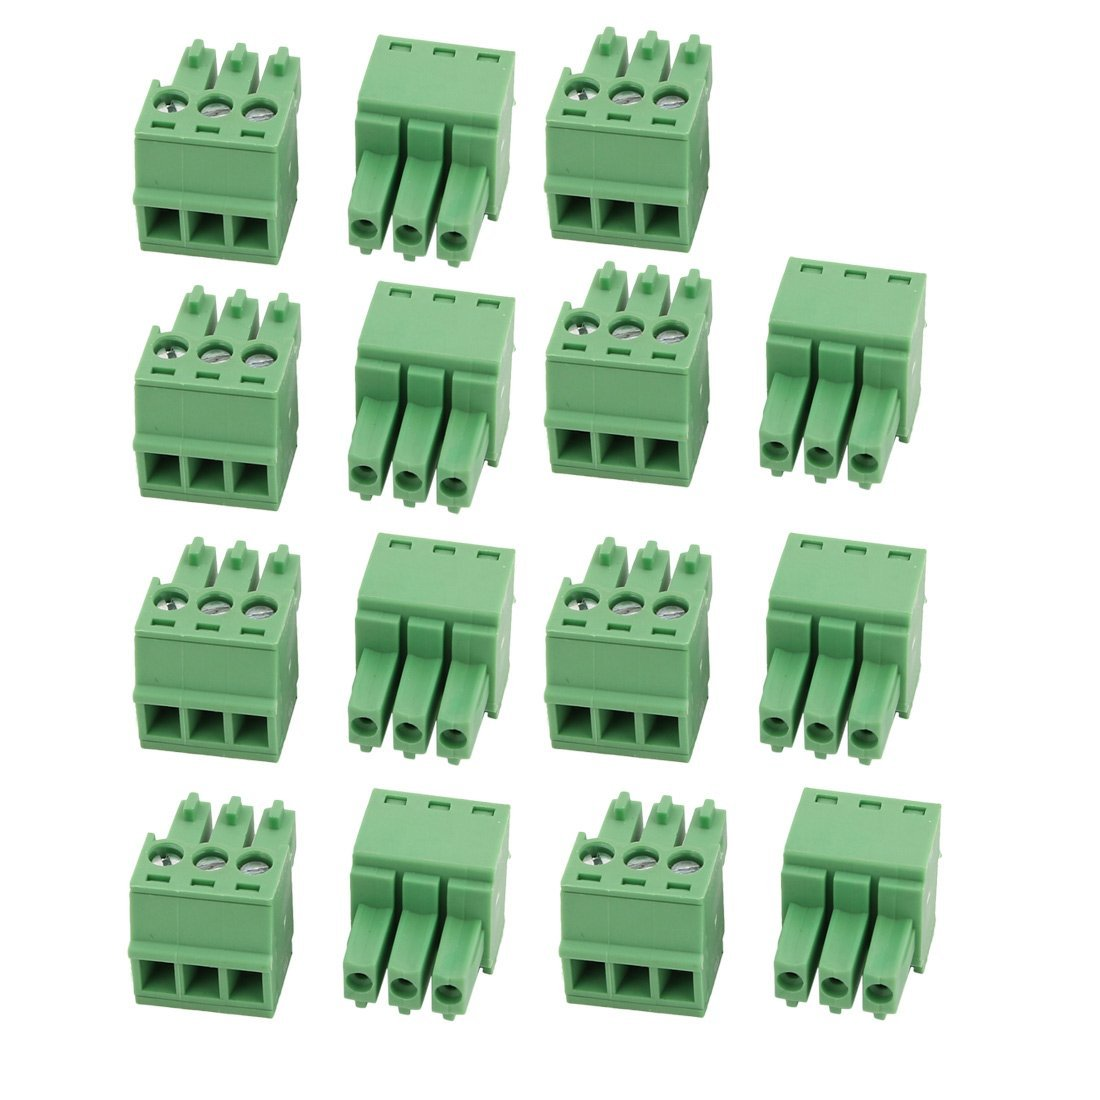 uxcell 15 Pcs LC1 AC300V 8A 3.5mm Pitch 3P PCB Mount Terminal Block Wire Connector